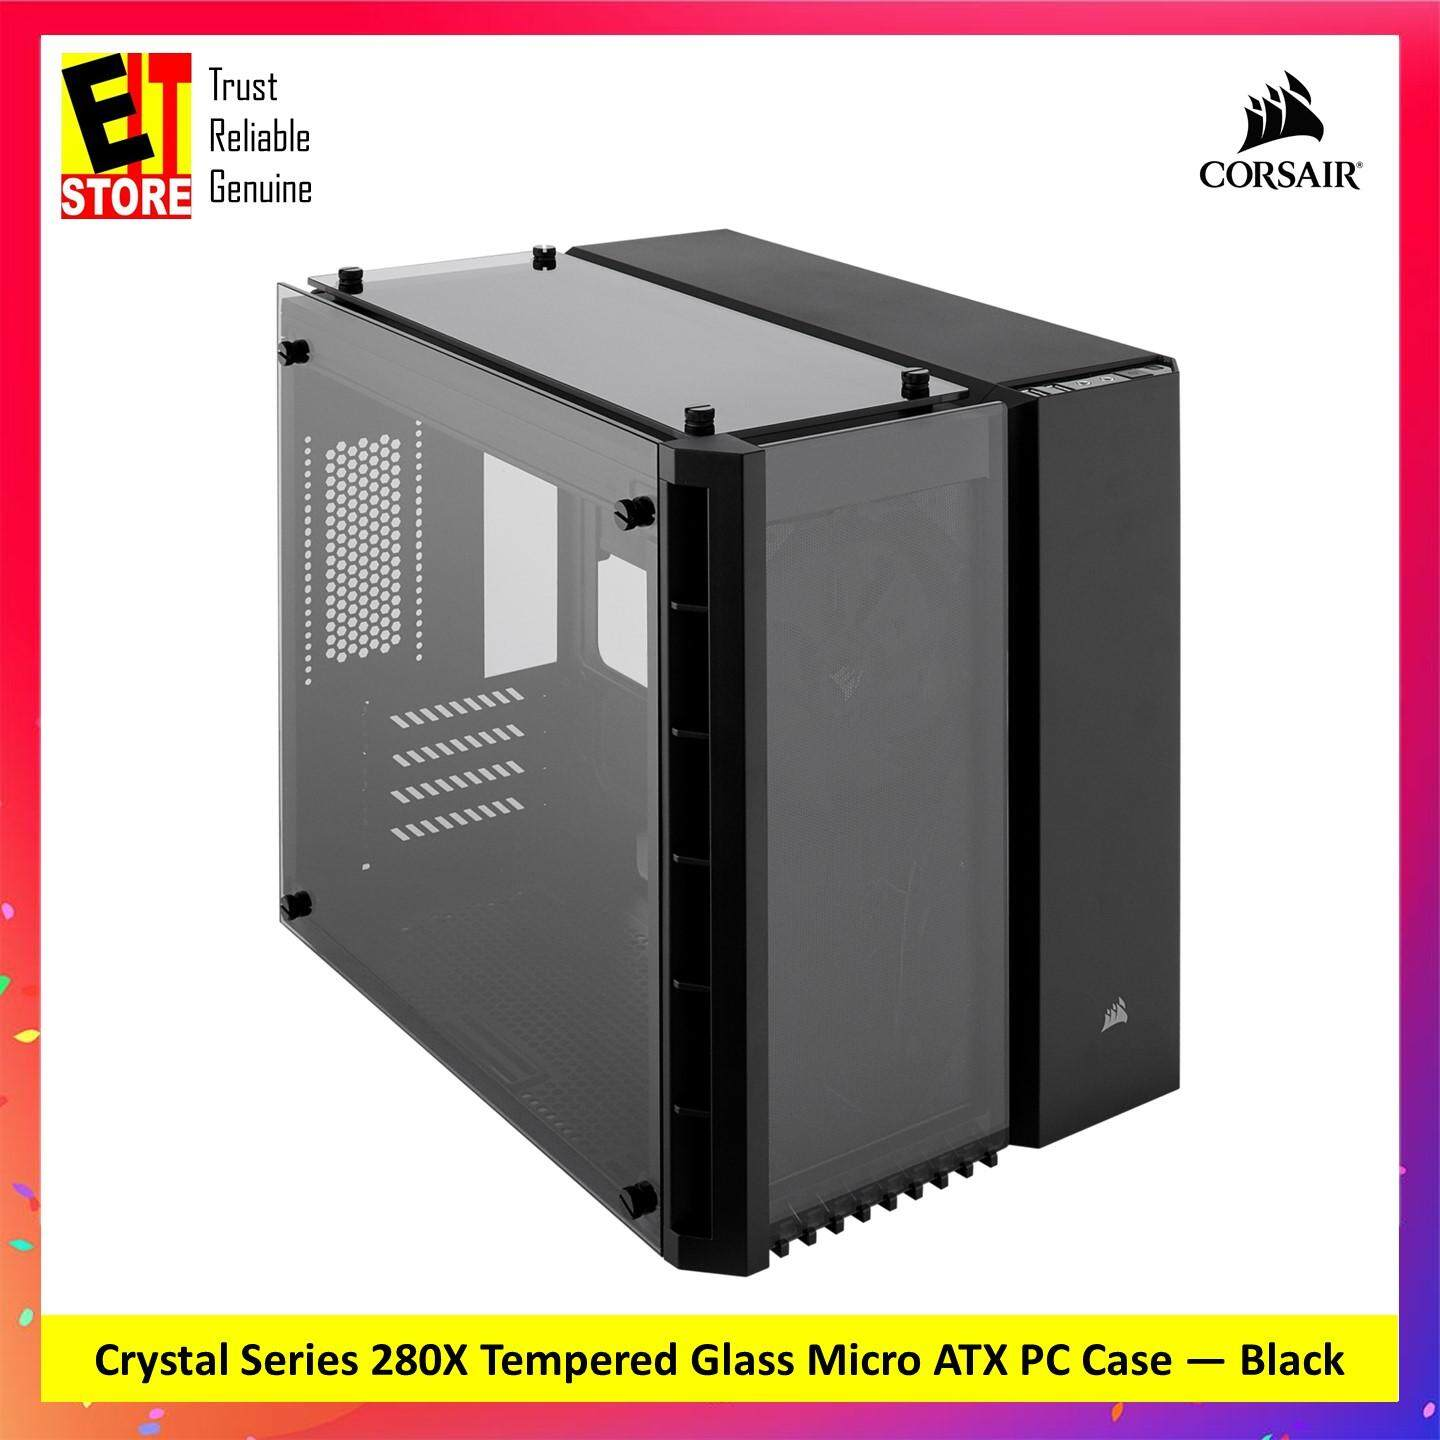 CORSAIR CRYSTAL SERIES 280X TEMPERED GLASS MICRO ATX PC CASING — BLACK (CC-9011134-WW) Malaysia